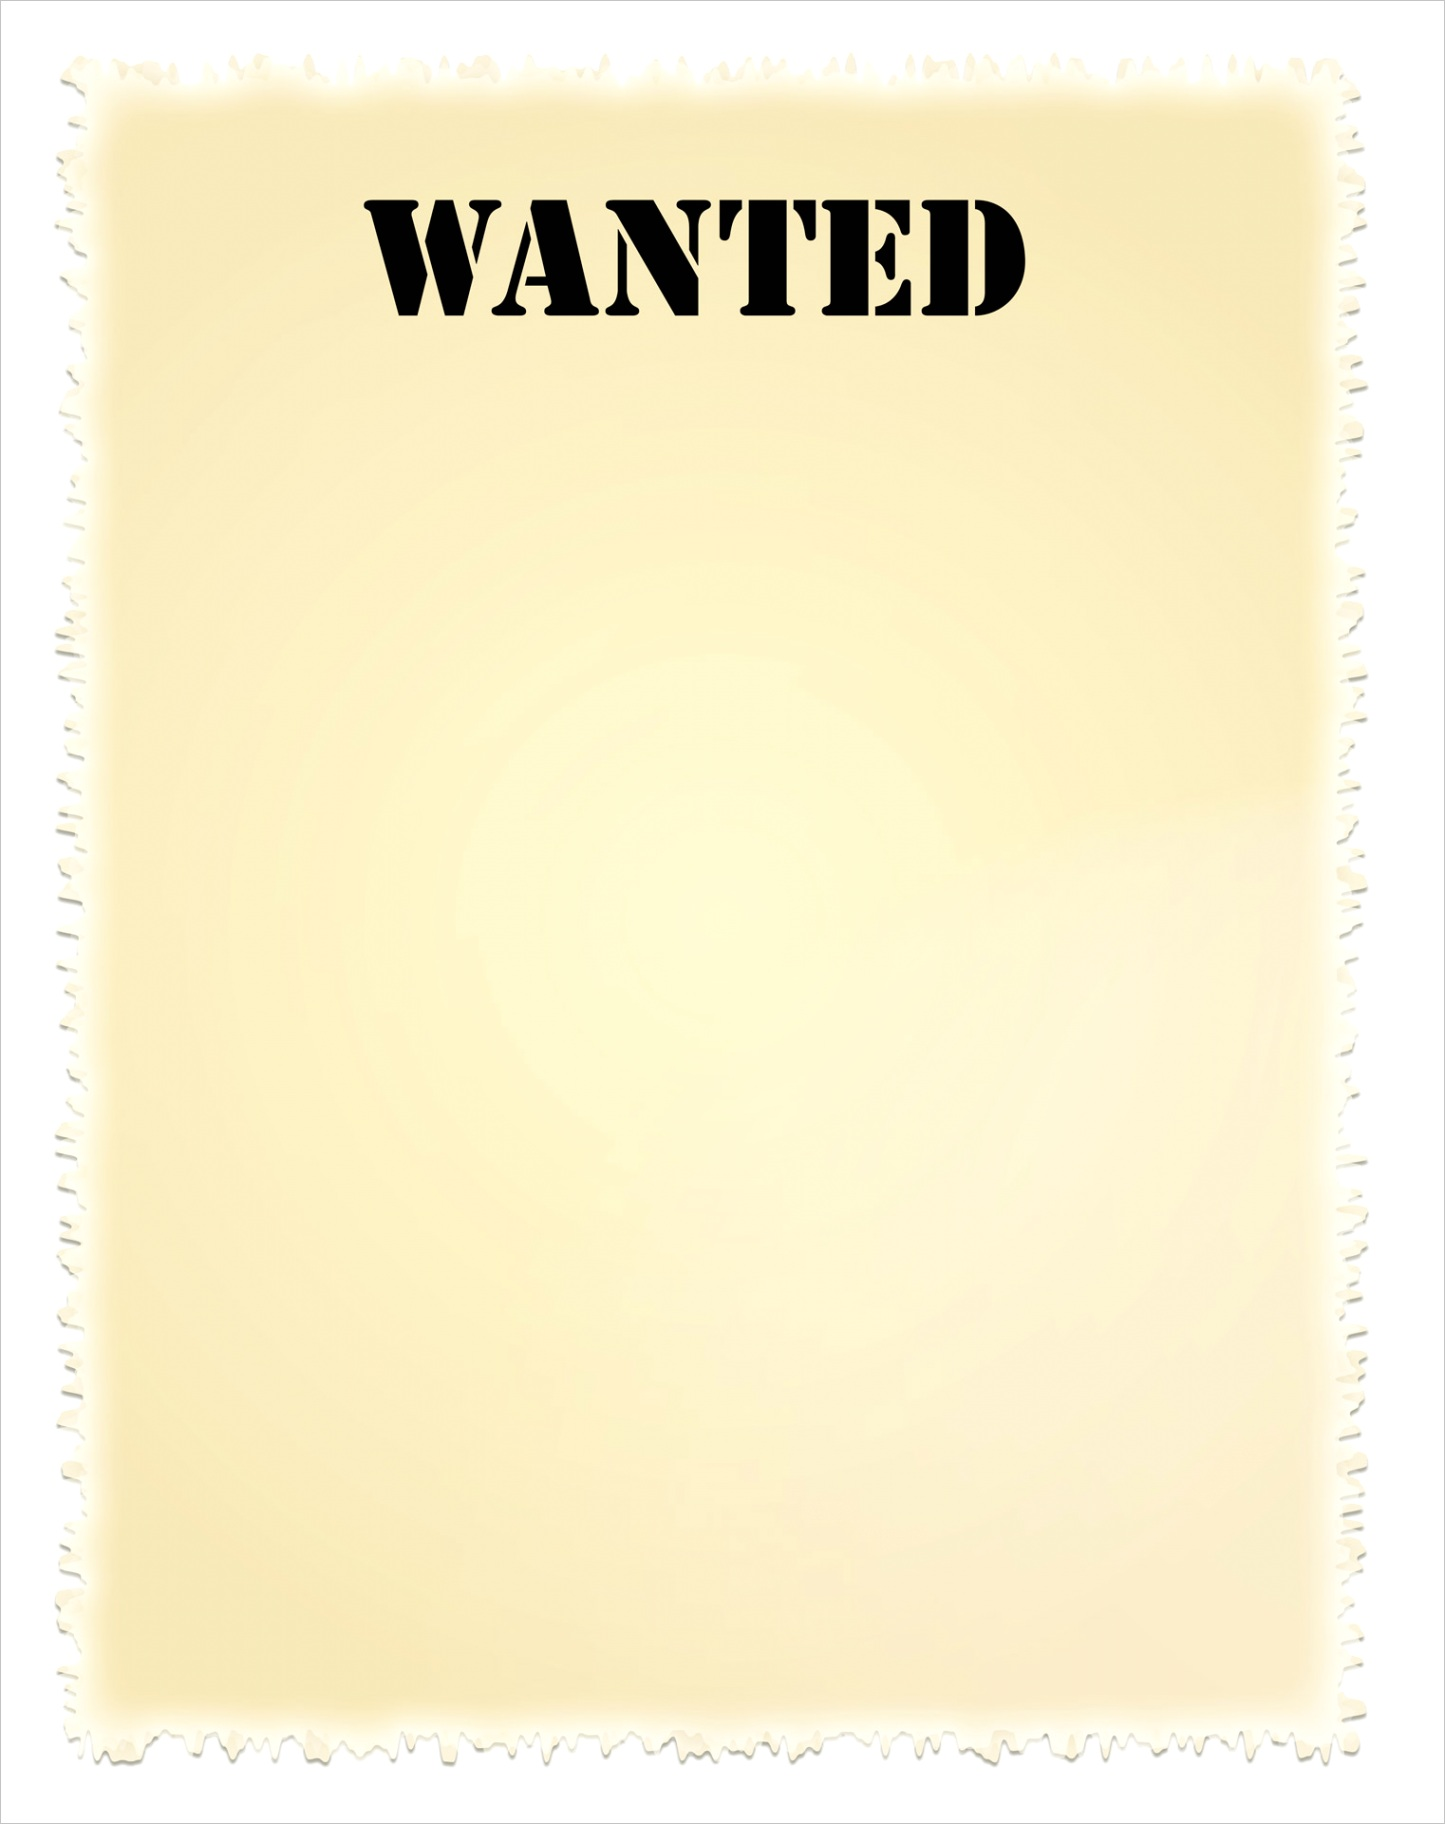 view image image= &picture=wanted poster clip art